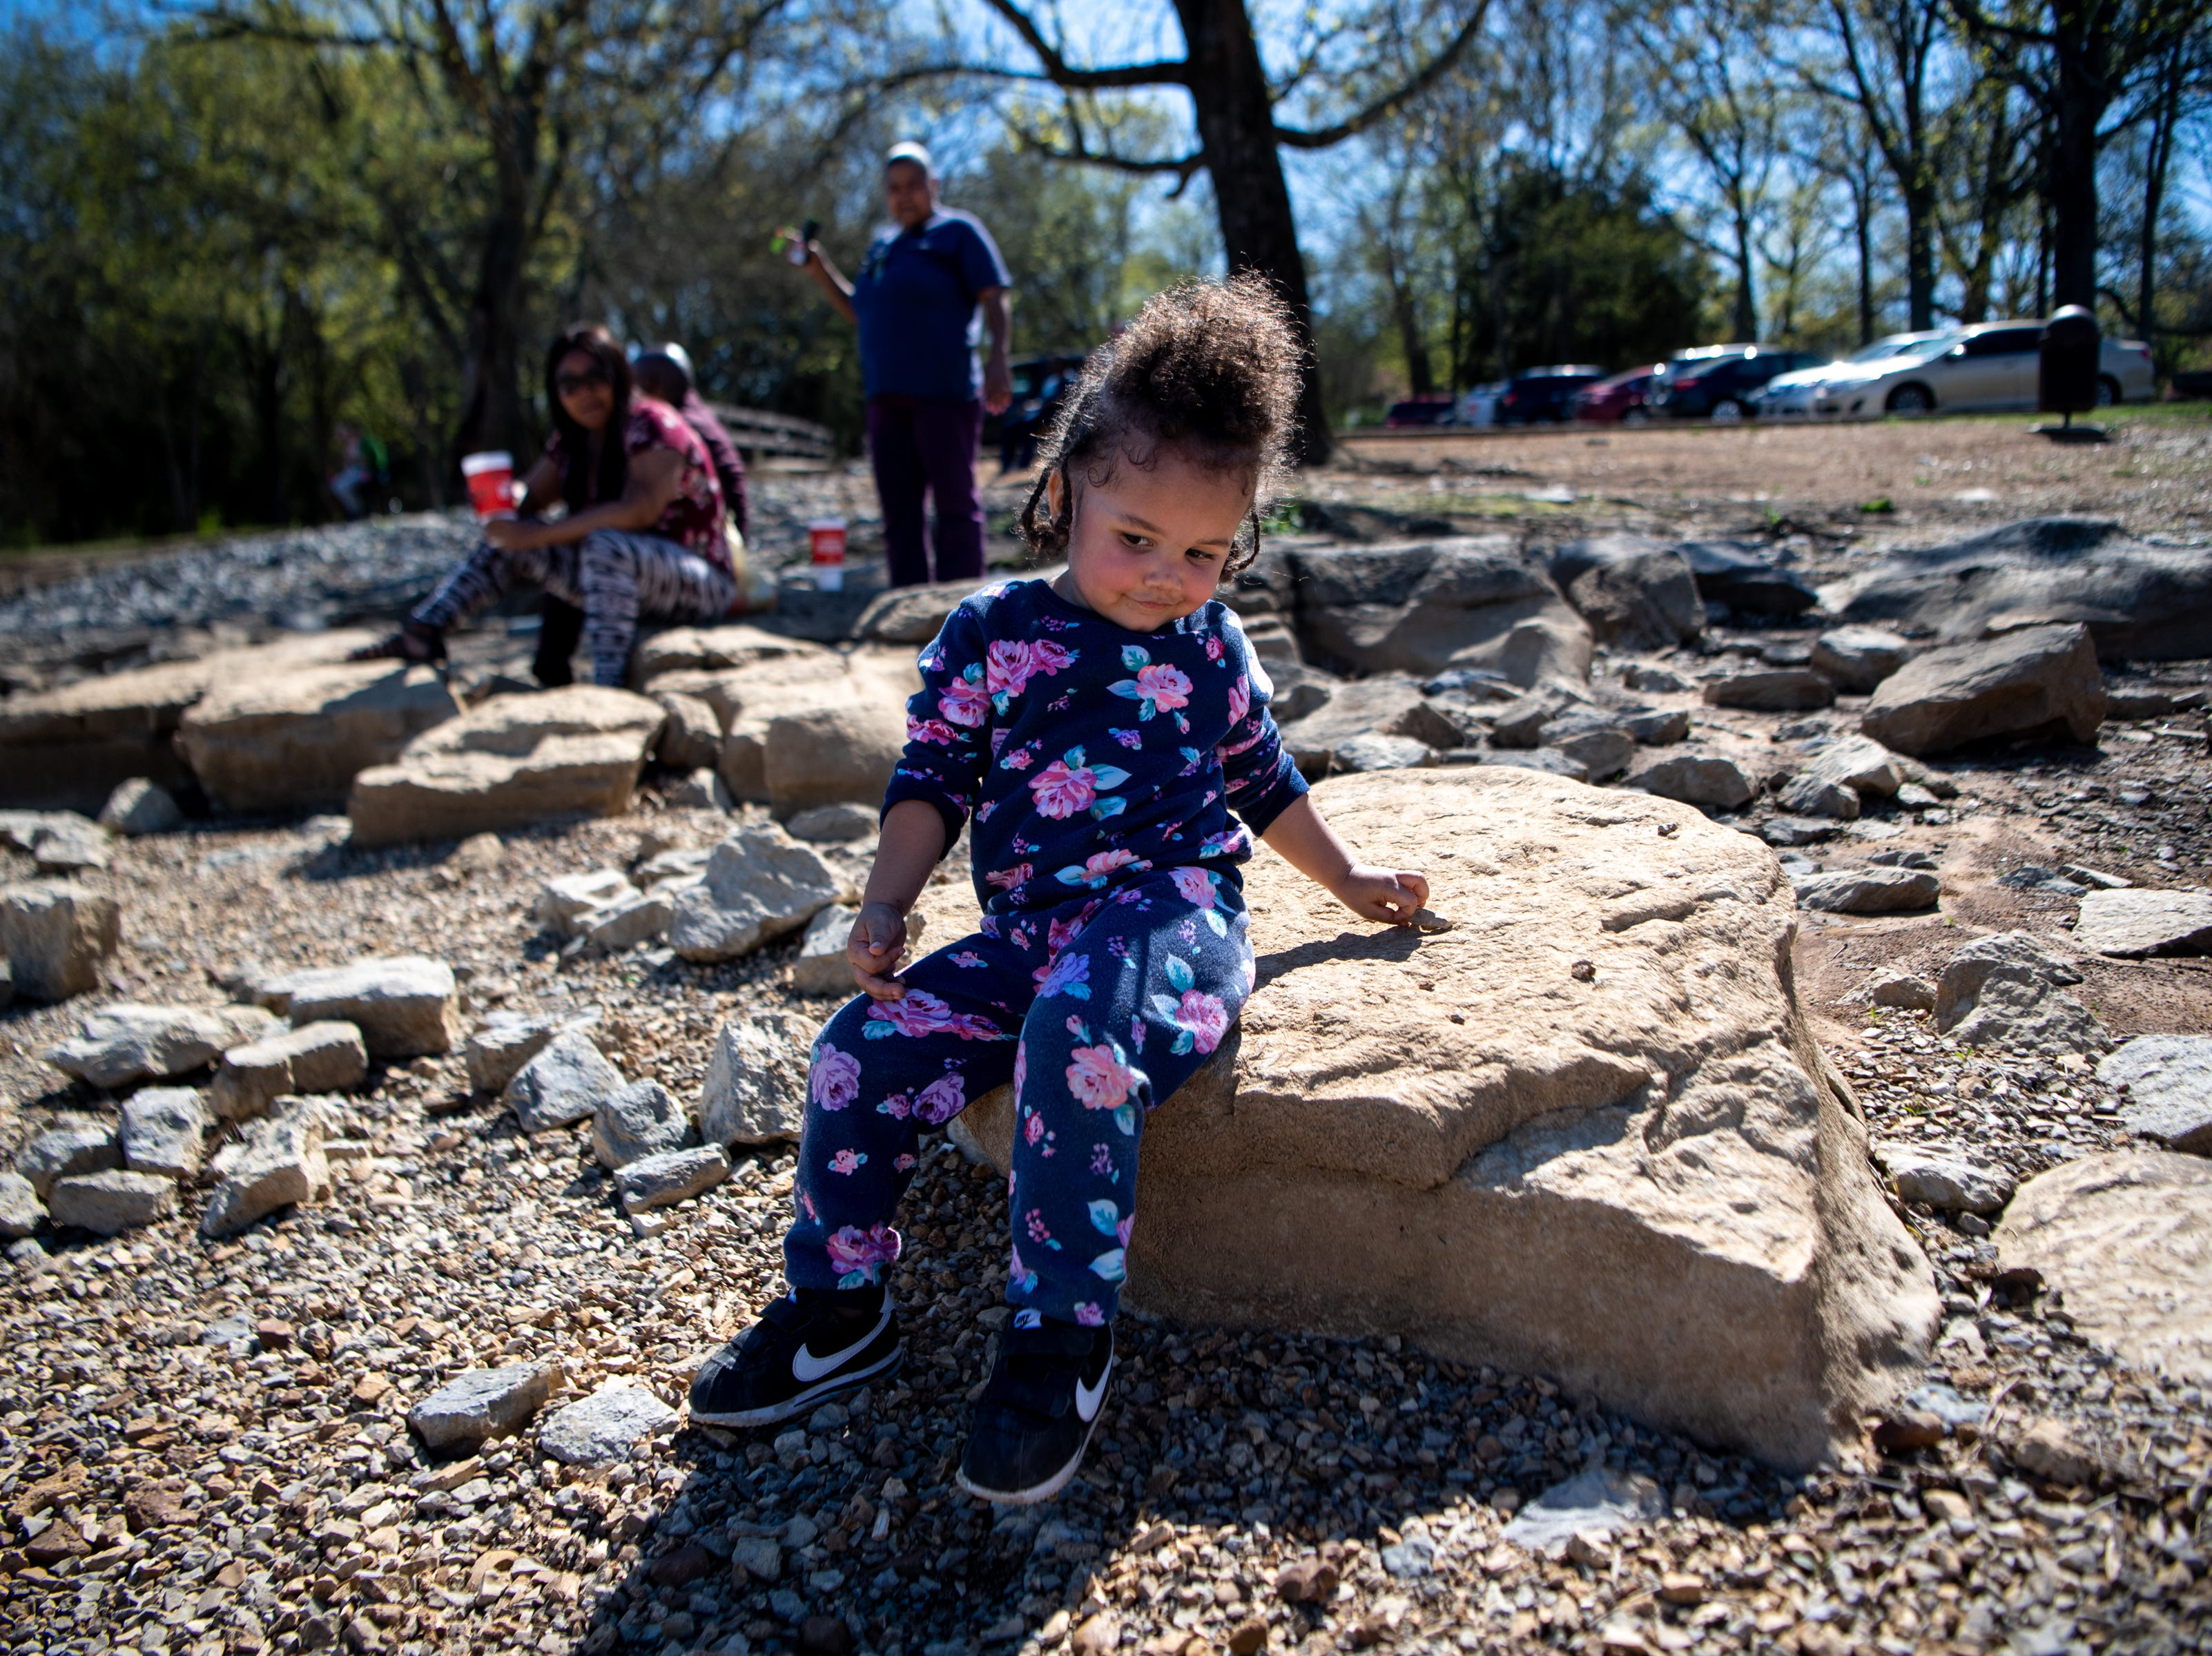 Diamond Covington, 2, plays with rocks at Percy Priest Lake Wednesday, April 10, 2019, in Nashville, Tenn.